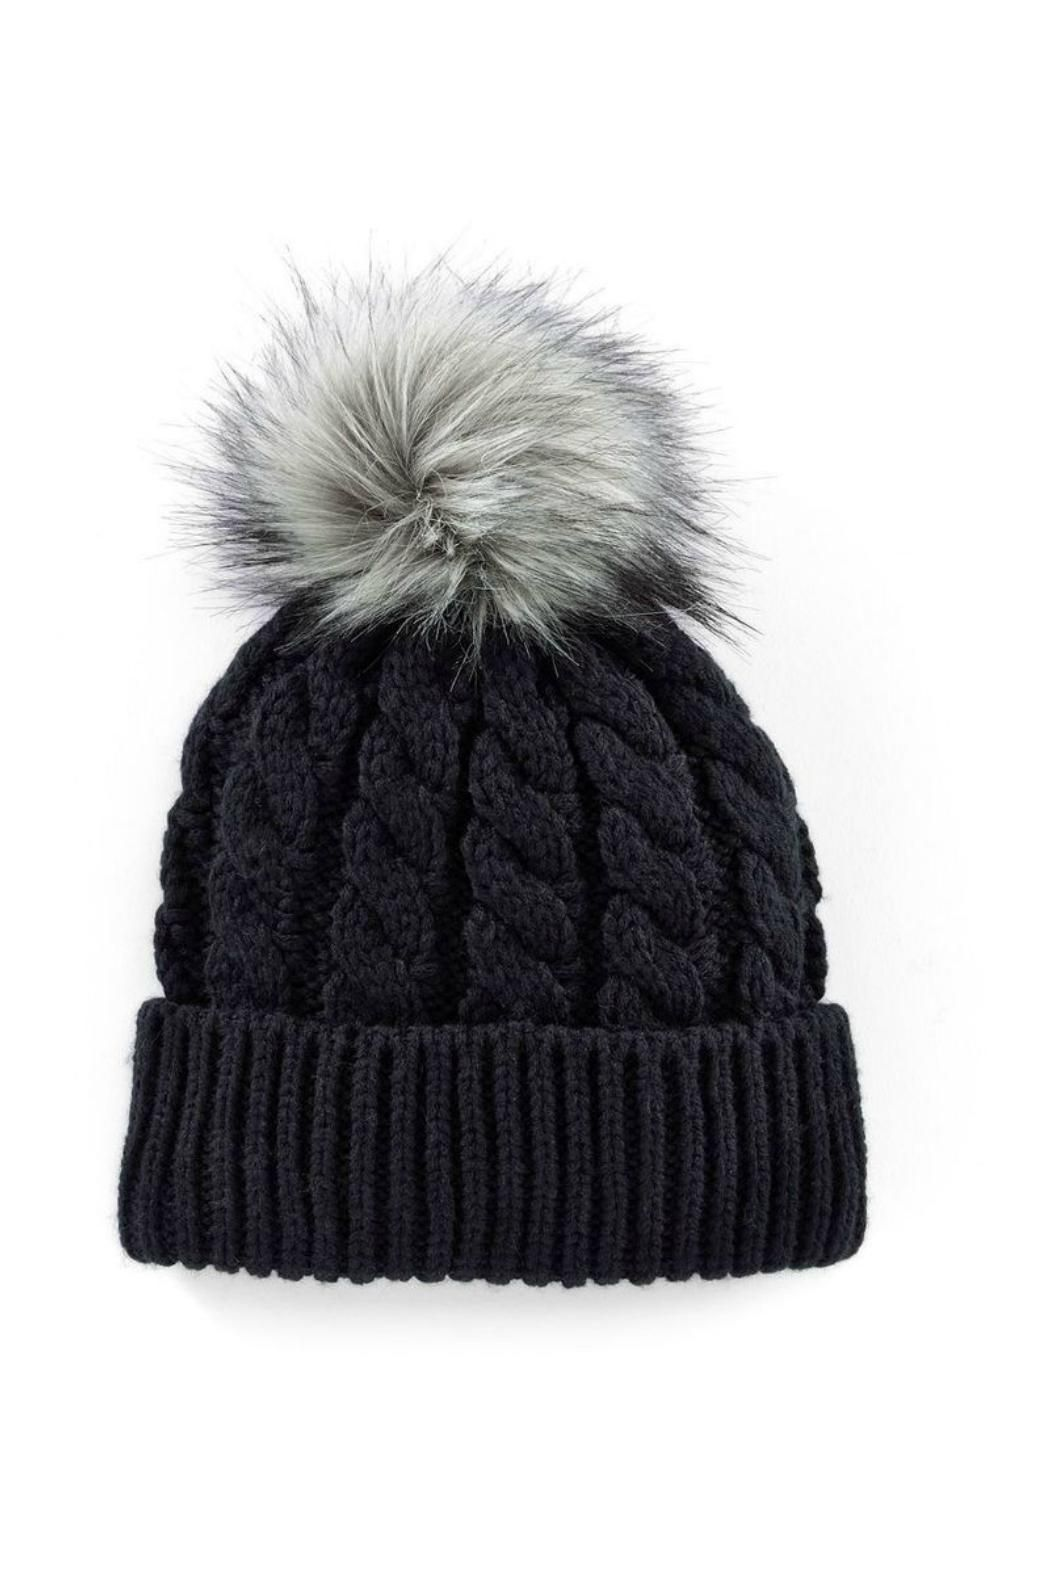 ad30f72495246 Black Fleece Lined Pom Pom Hat. One Size Fits Most. All Man Made Materials.  Fleece Line Hat by 6th Borough Boutique. Accessories - Hats New Jersey